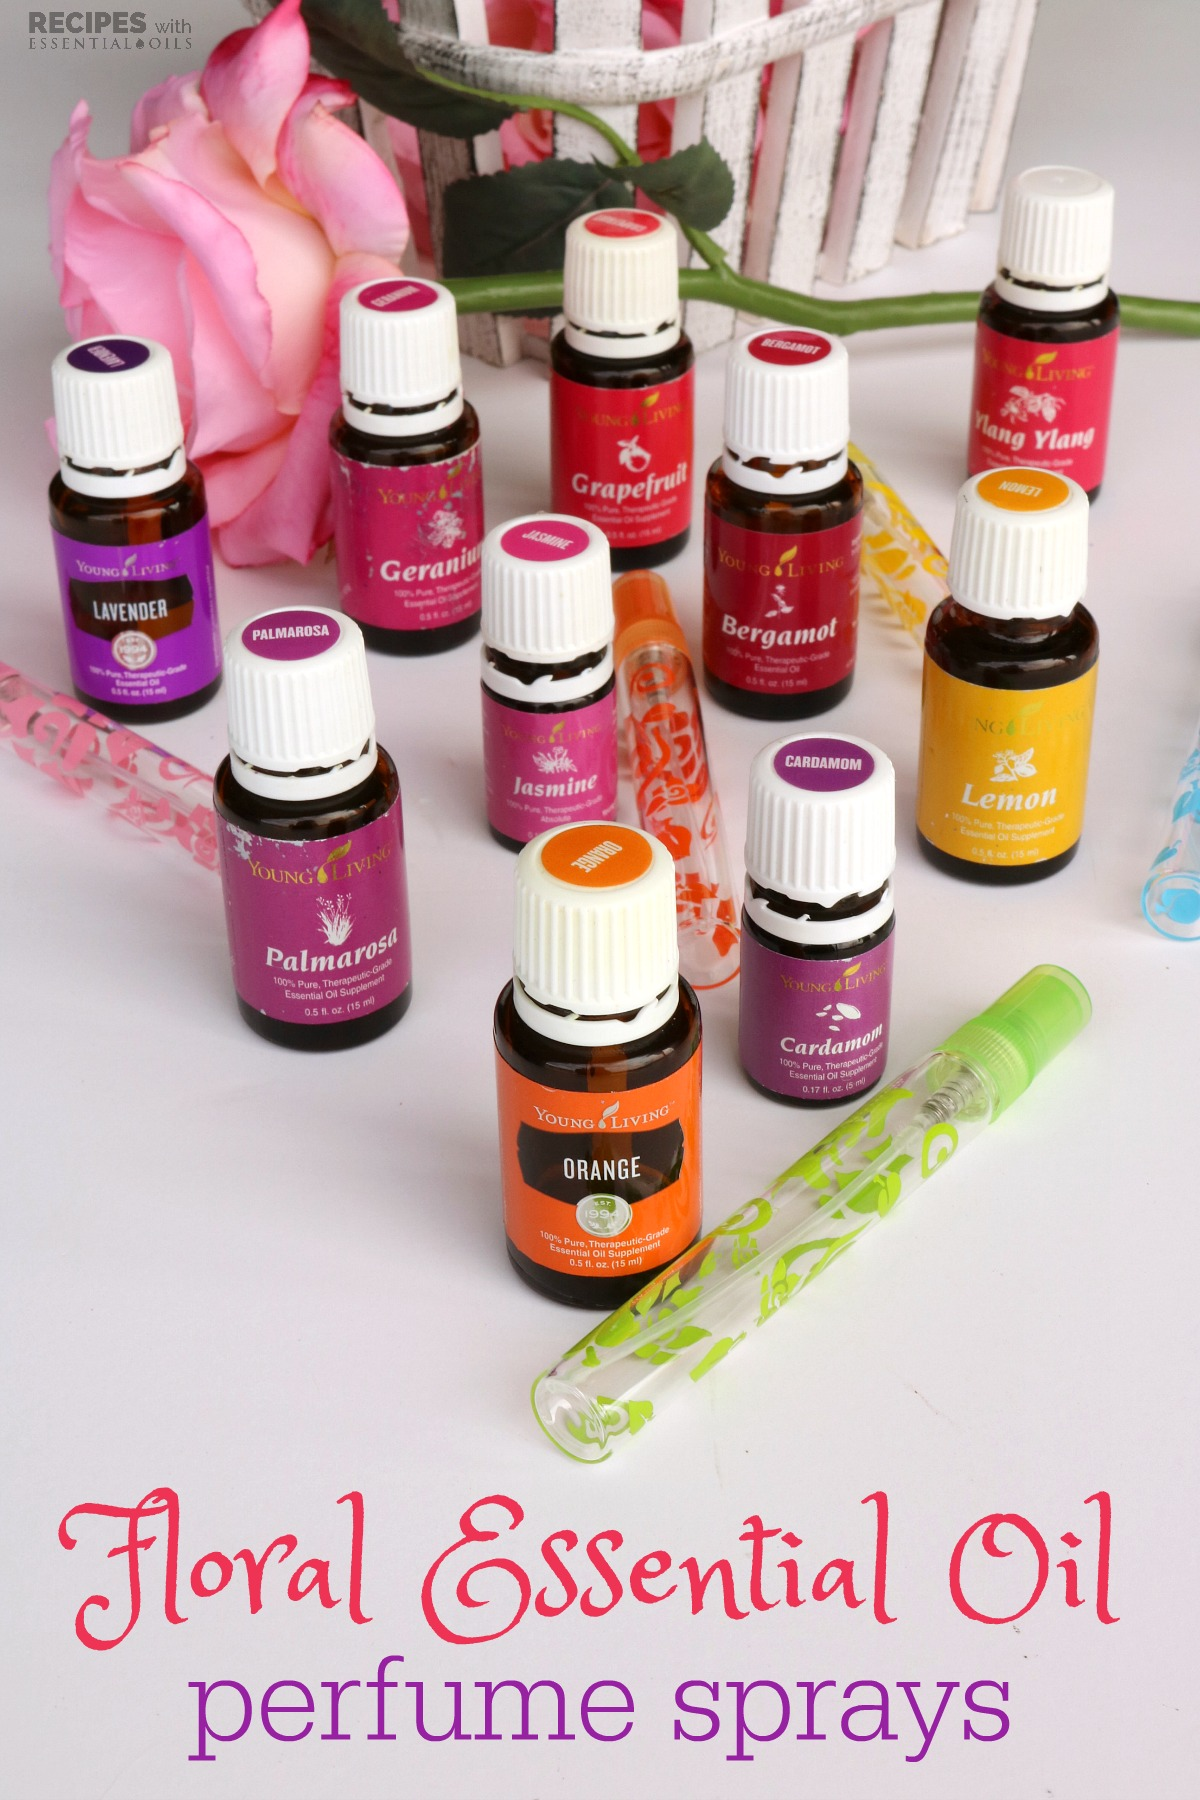 4 Floral Essential Oil Perfume Sprays from RecipeswithEssentialOils.com